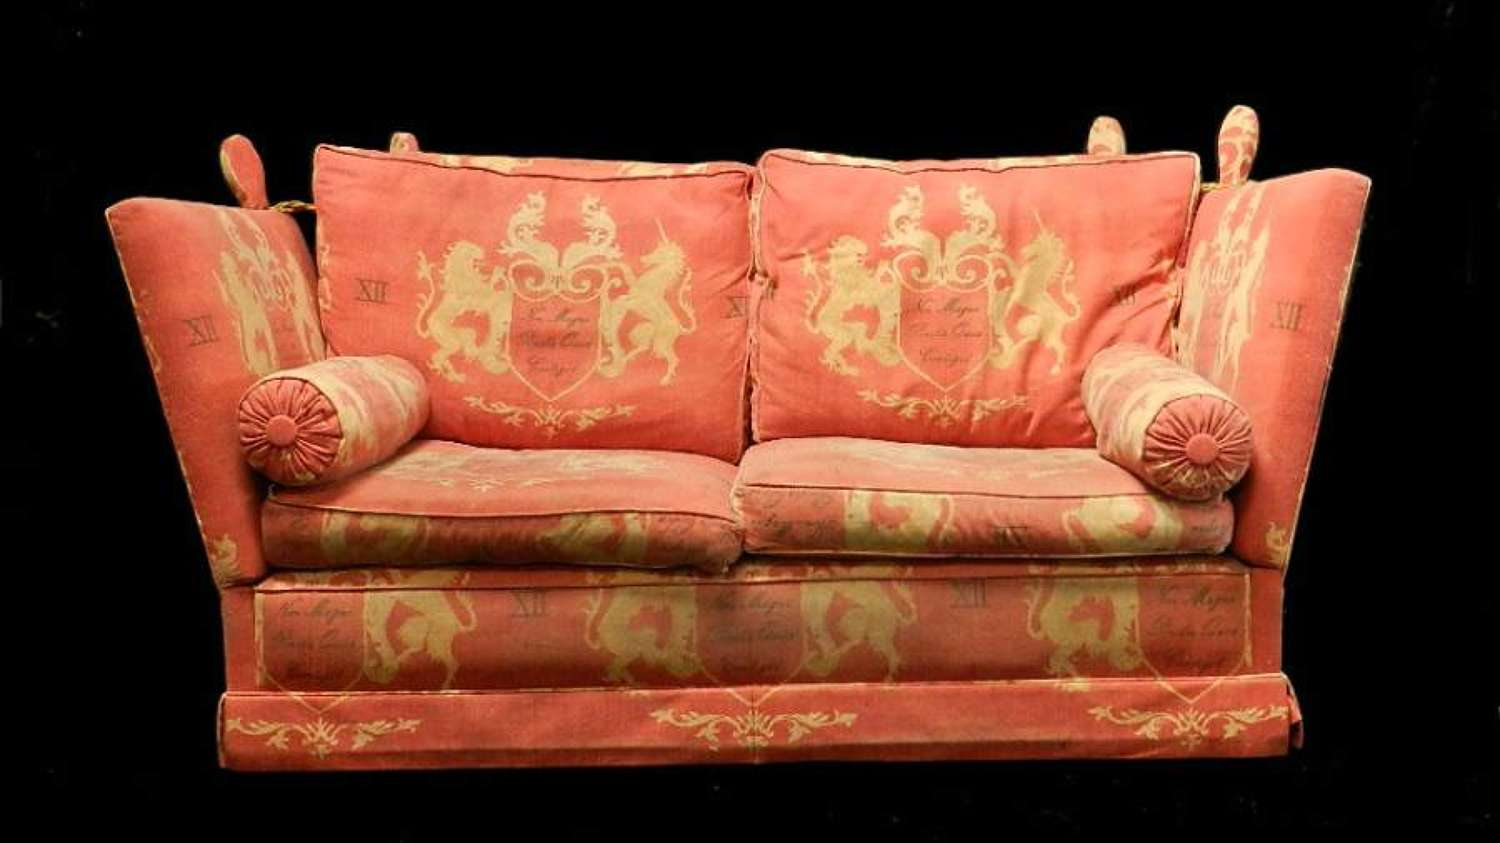 Vintage Knowle Sofa 2 seater to clean/restore or recover